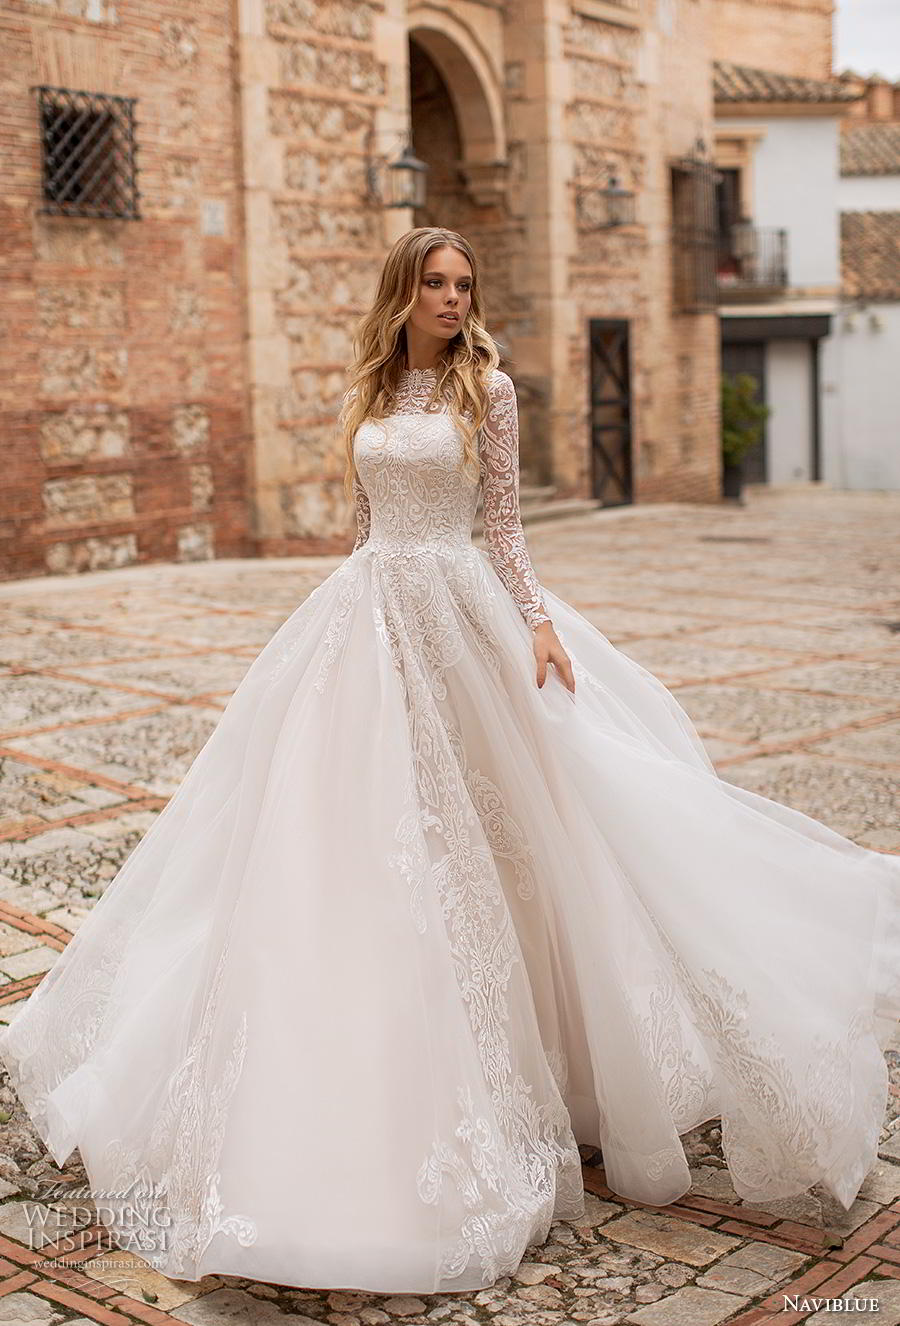 naviblue 2019 bridal long sleeves illusion bateau straight across neckline heavily embellished bodice romantic a line wedding dress covered lace back royal train (10) mv